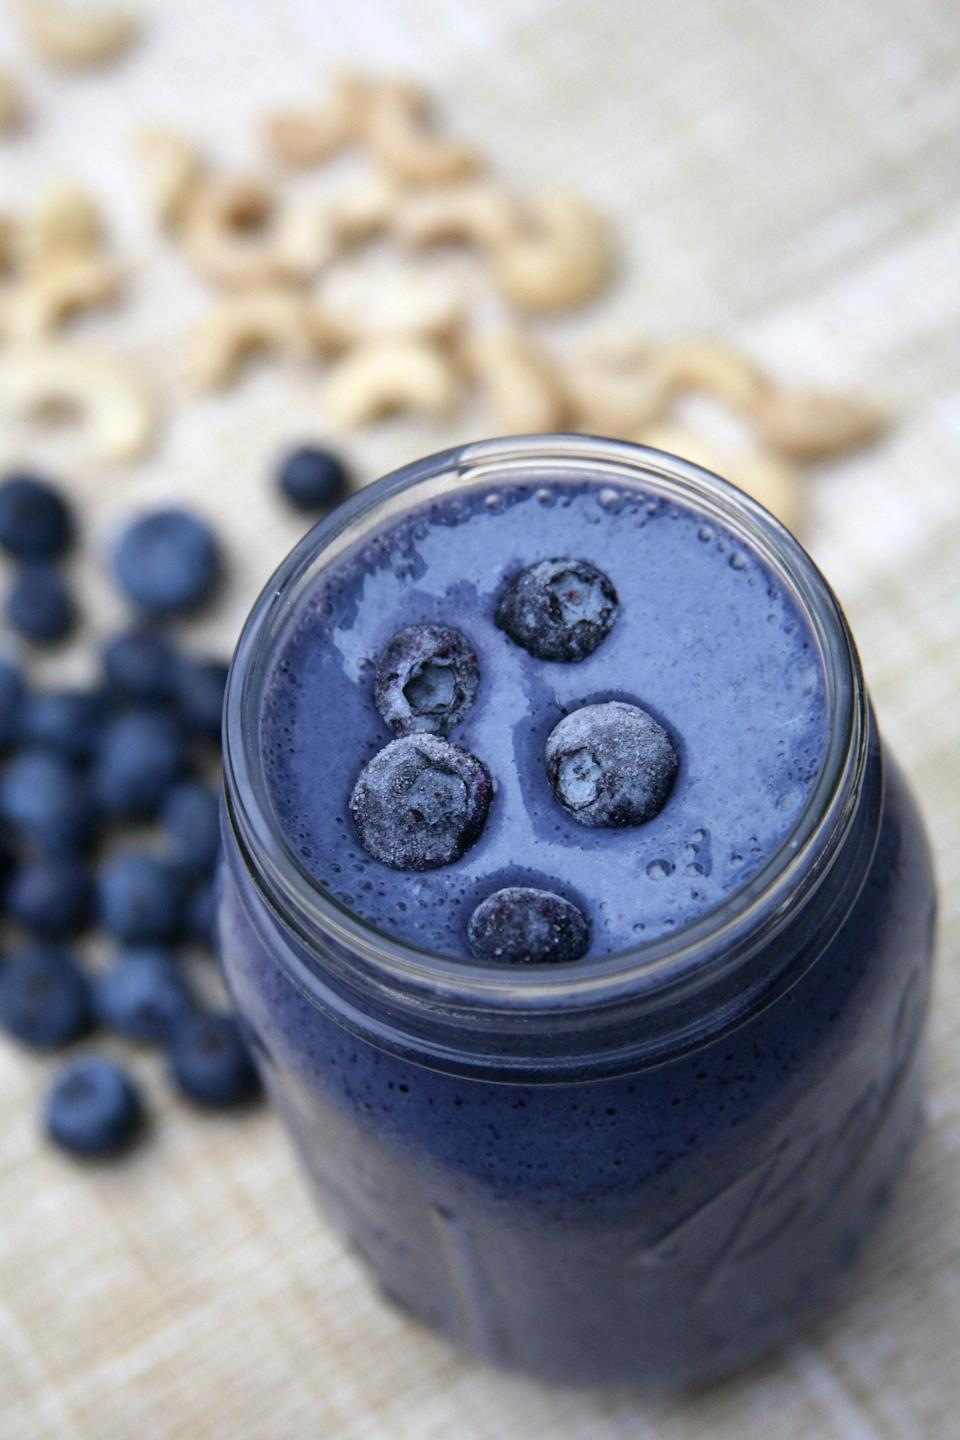 """<p>Sweet and creamy and such a gorgeous vibrant color, this sweet smoothie will remind you of cheesecake drizzled with blueberries.</p> <p><strong>Get the recipe:</strong> <a href=""""https://www.popsugar.com/fitness/Blueberry-Cheesecake-Smoothie-40681216"""" class=""""link rapid-noclick-resp"""" rel=""""nofollow noopener"""" target=""""_blank"""" data-ylk=""""slk:blueberry cheesecake smoothie"""">blueberry cheesecake smoothie</a></p>"""